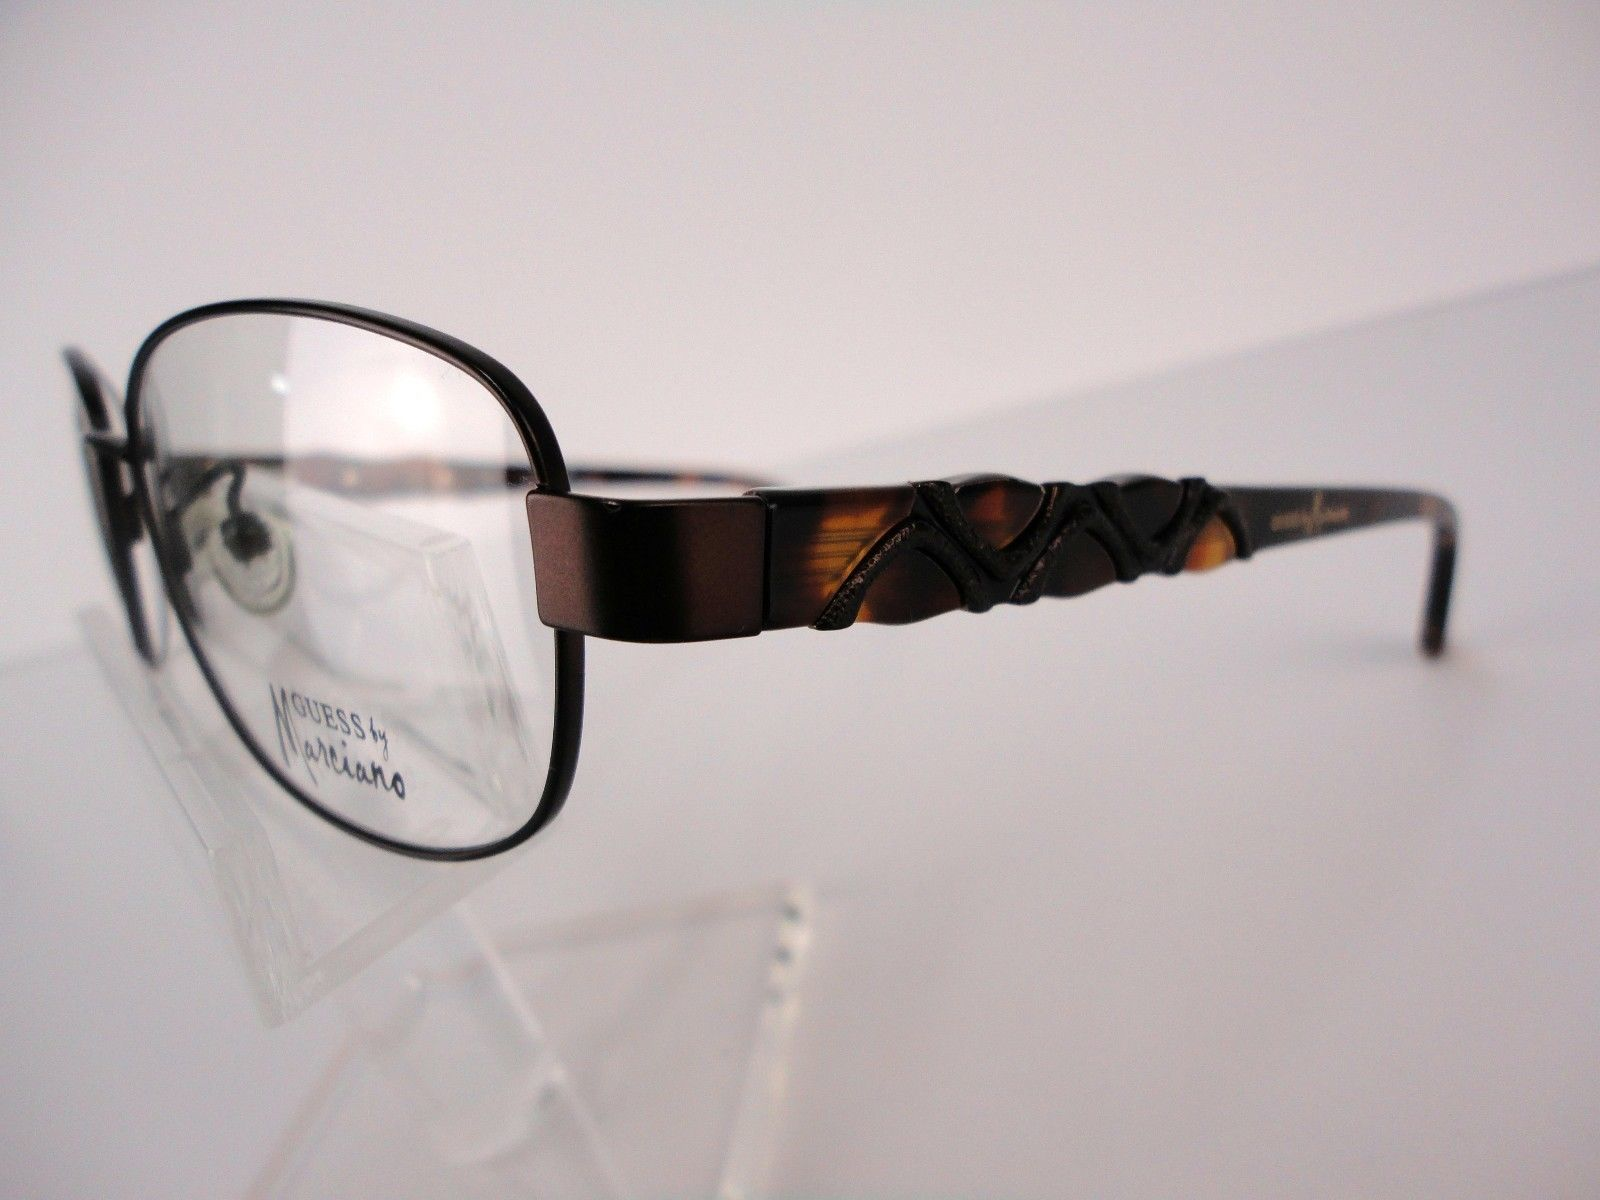 Guess By Marciano GM155 Brown/Tortoise 54x15 135mm Eyeglass Frames